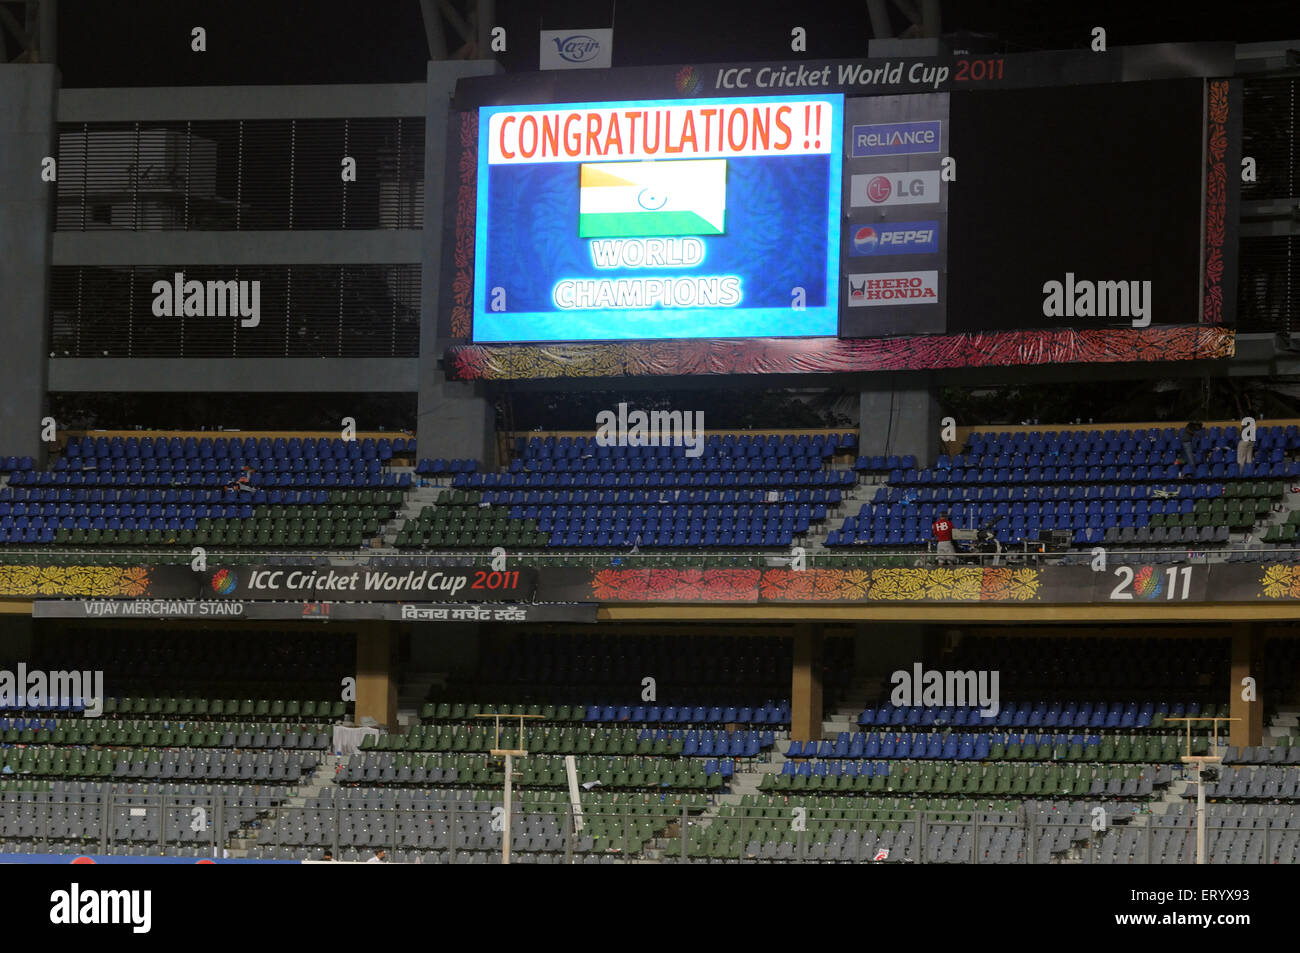 Giant LCD empty stand Wankhede stadium displays tricolour ICC Cricket World Cup 2011 final match Wankhede Stadium - Stock Image